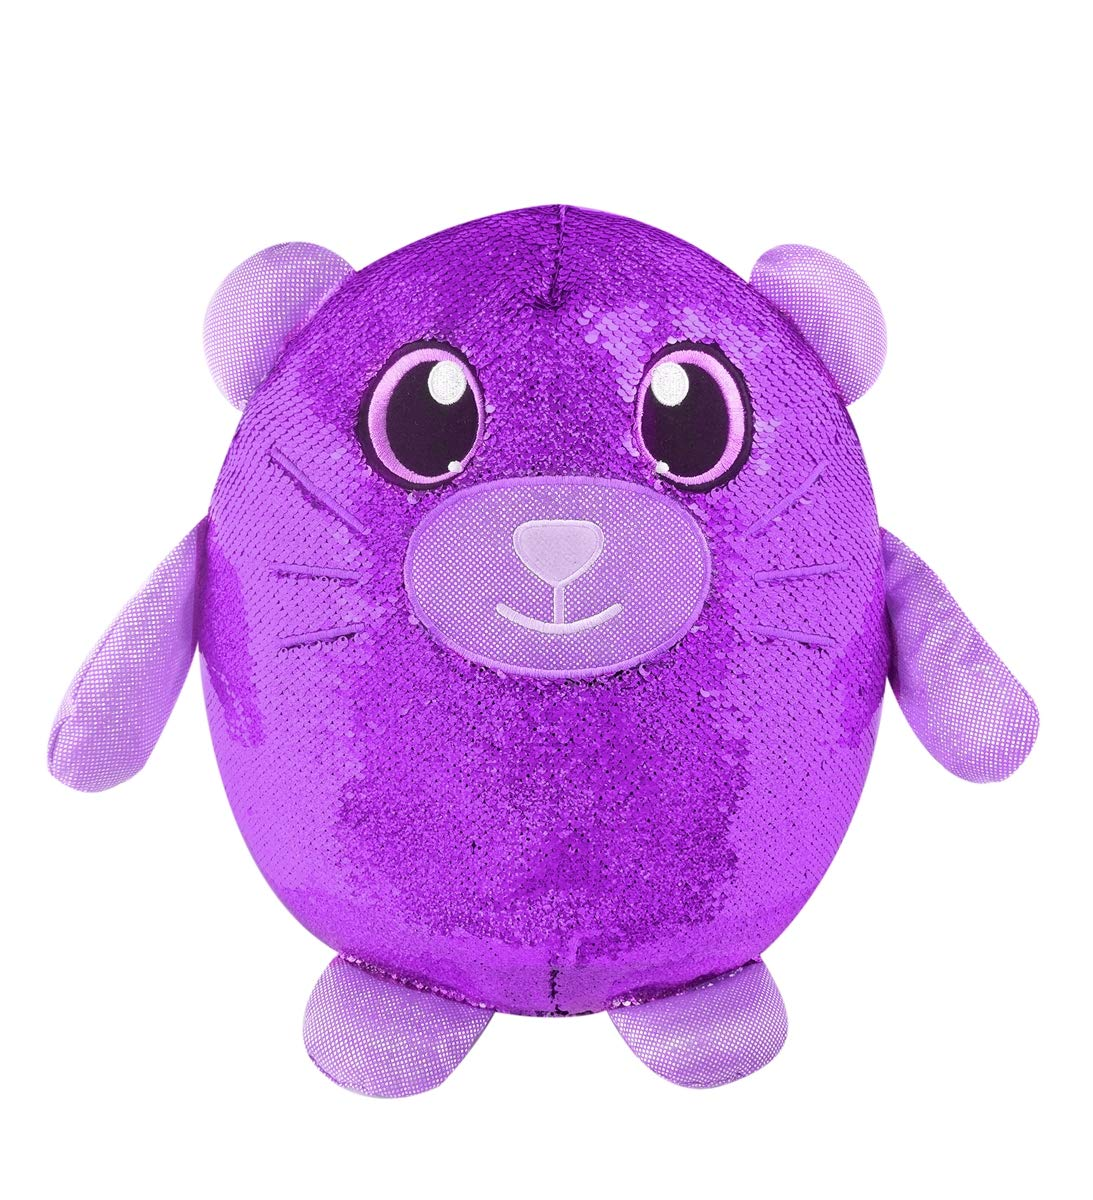 Shimmeez Plushies Have Everything Your Kid Is Looking for in a Toy